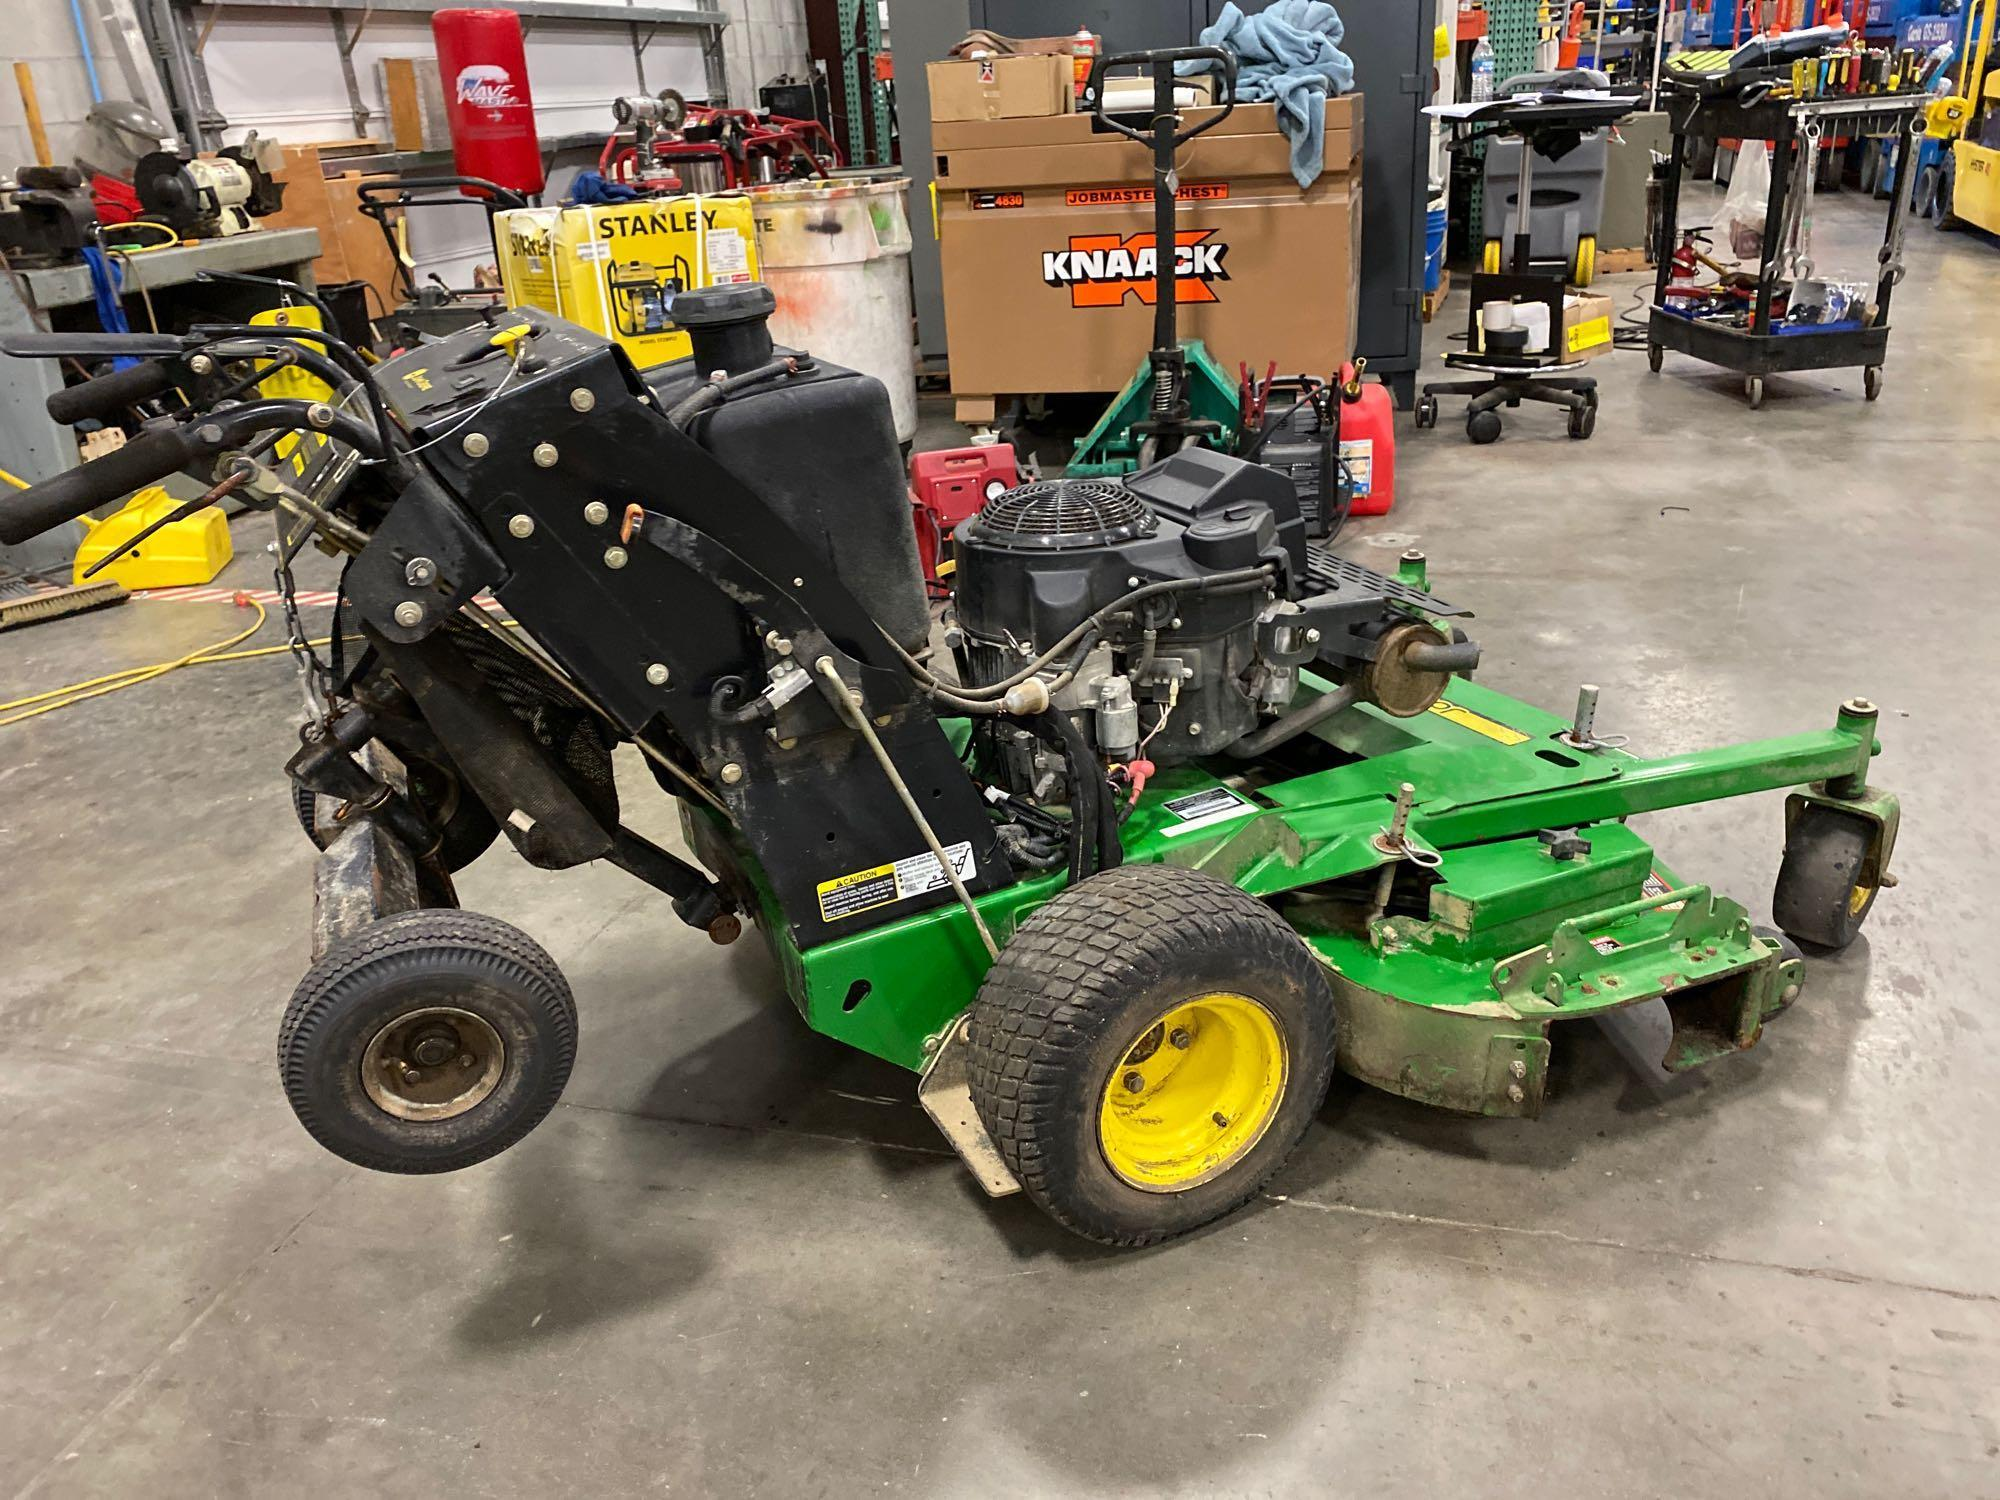 """JOHN DEERE WHP52A MOWER, 52"""" DECK, RUNS AND OPERATES - Image 4 of 7"""